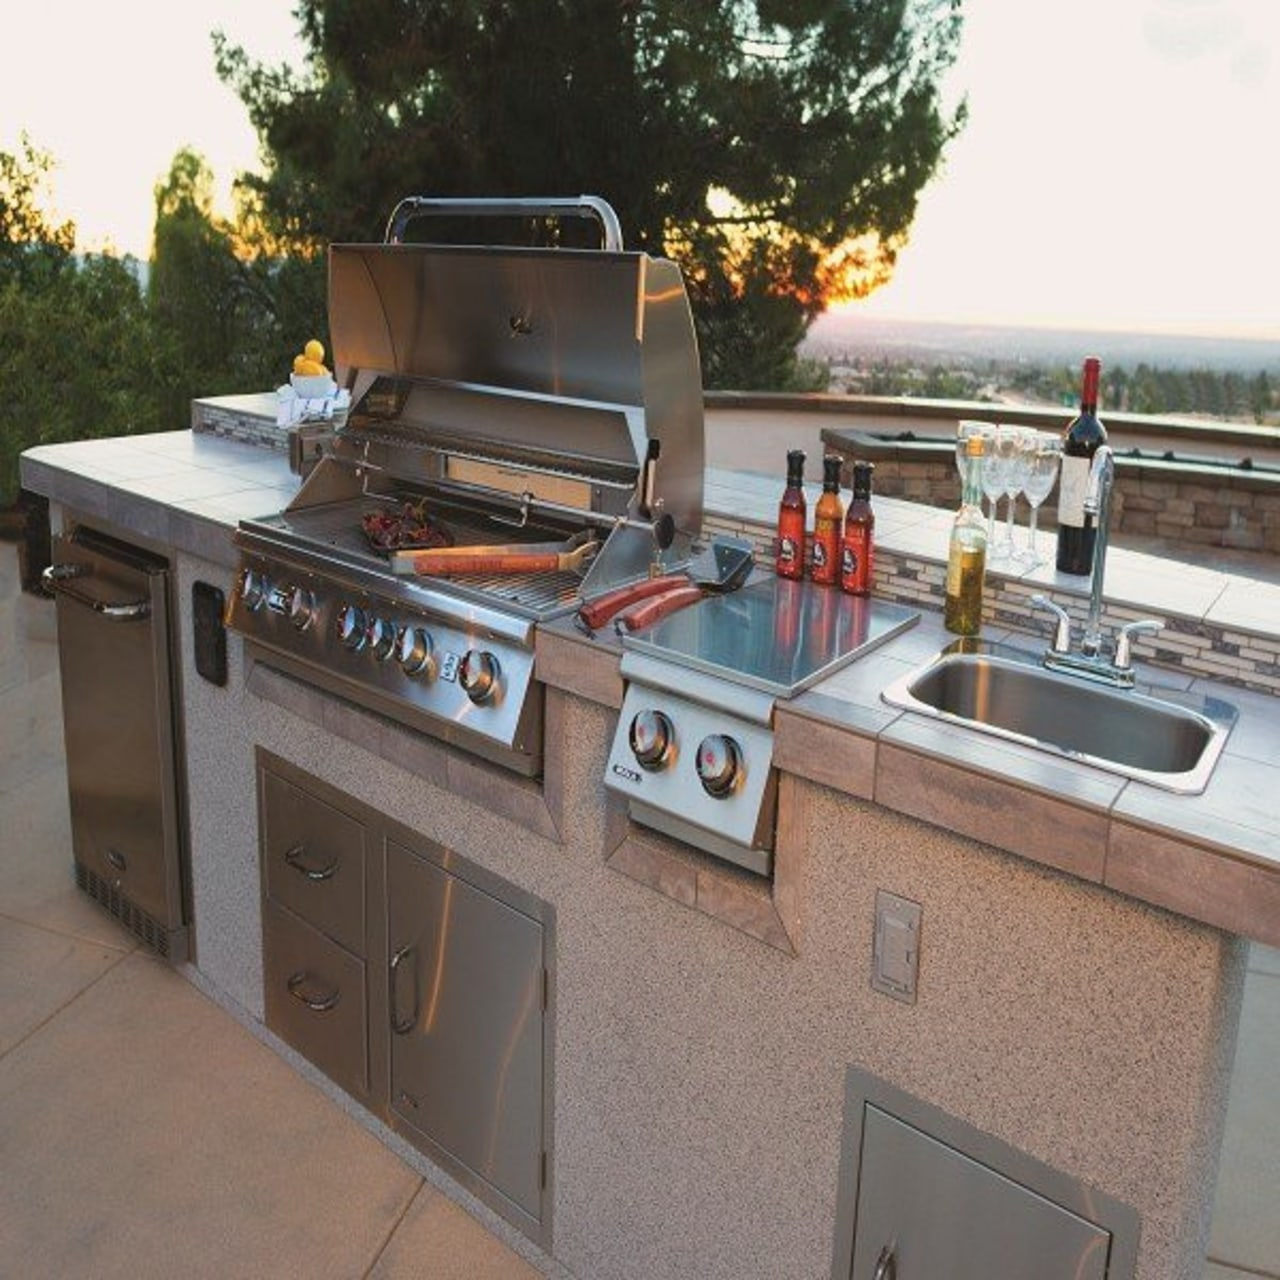 A barbecue is a welcome addition to any barbecue grill, countertop, kitchen, kitchen appliance, outdoor grill, gray